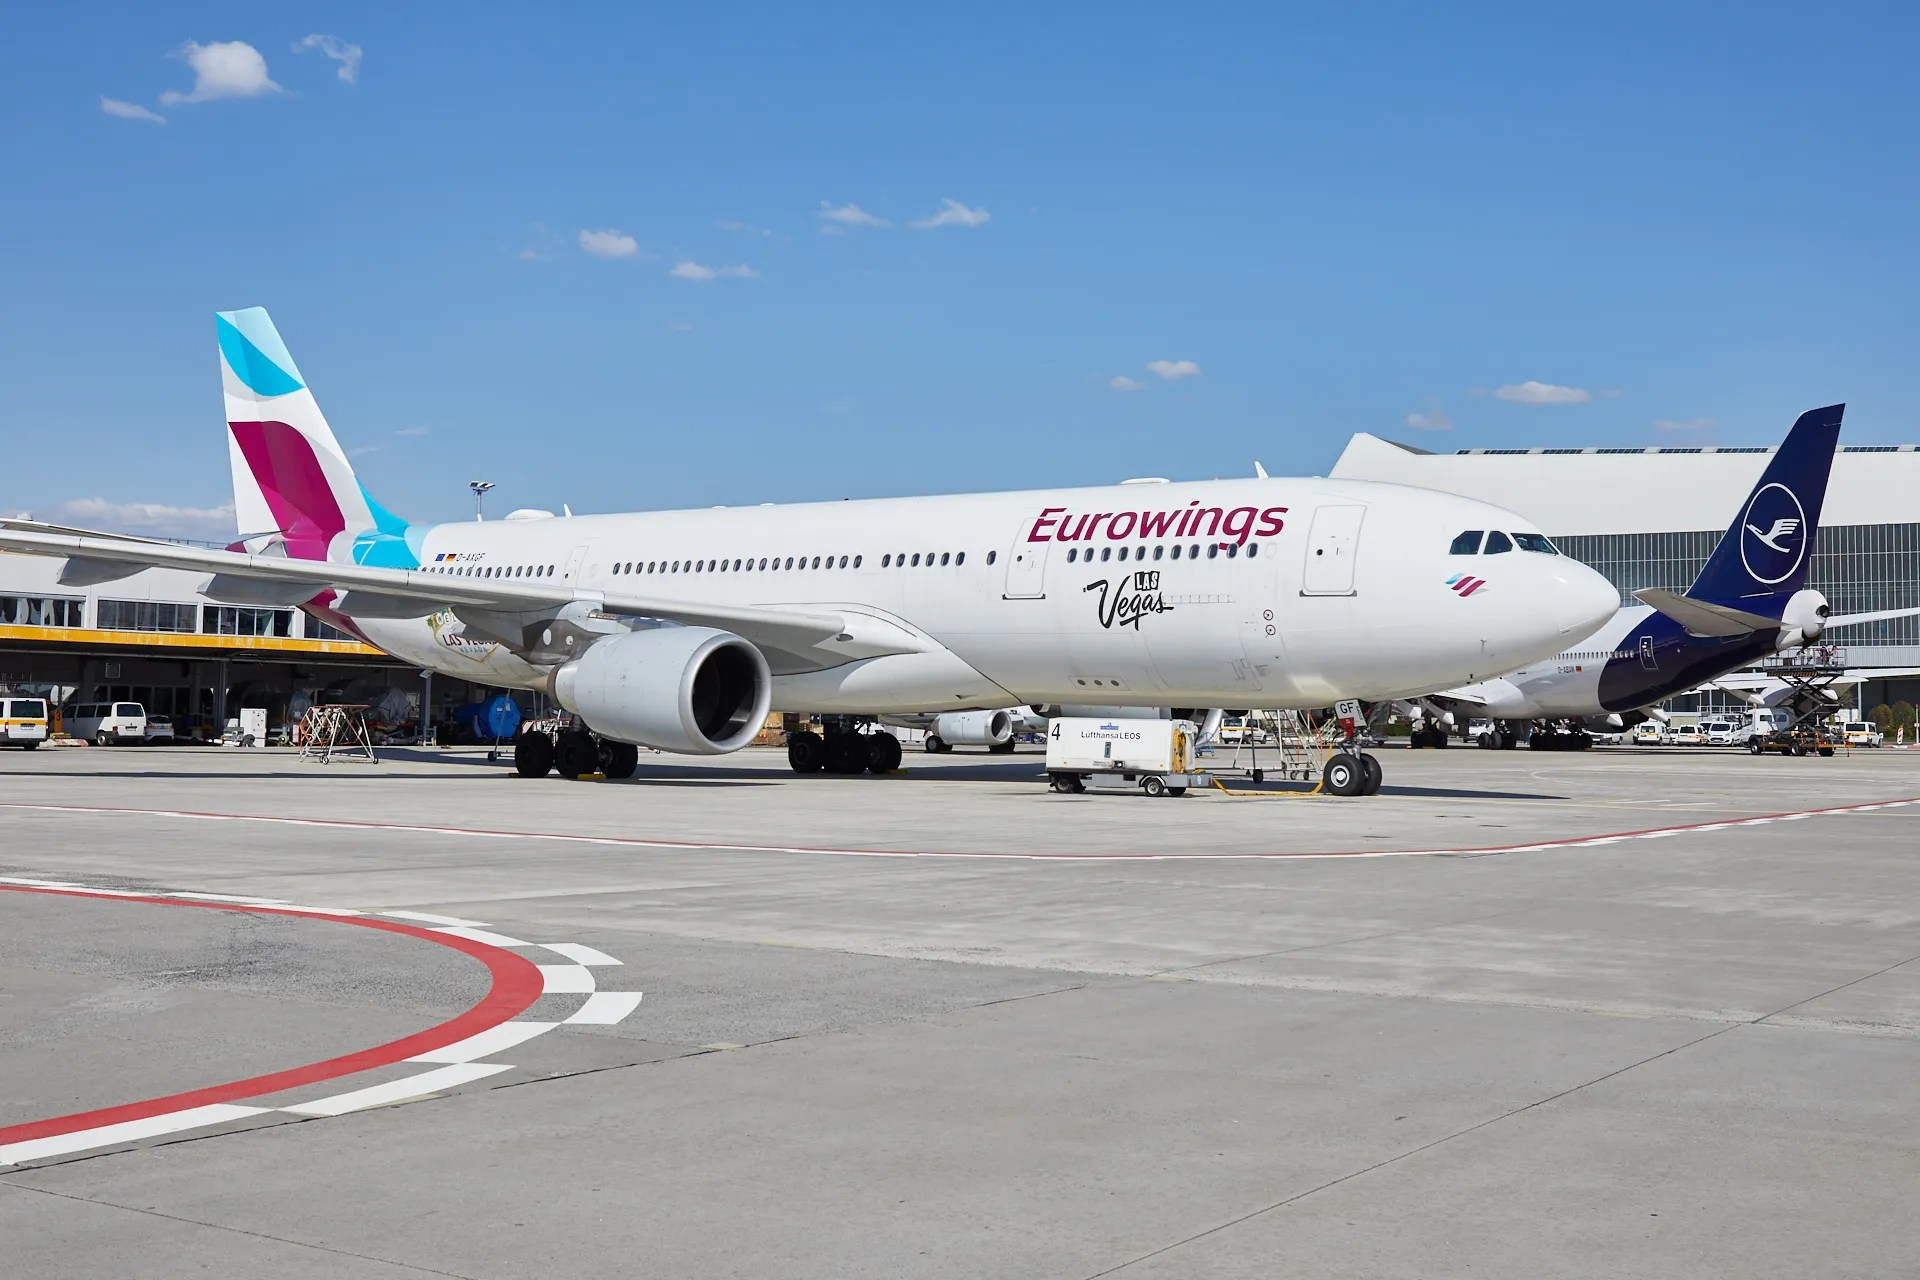 lufthansa eurowings airline what